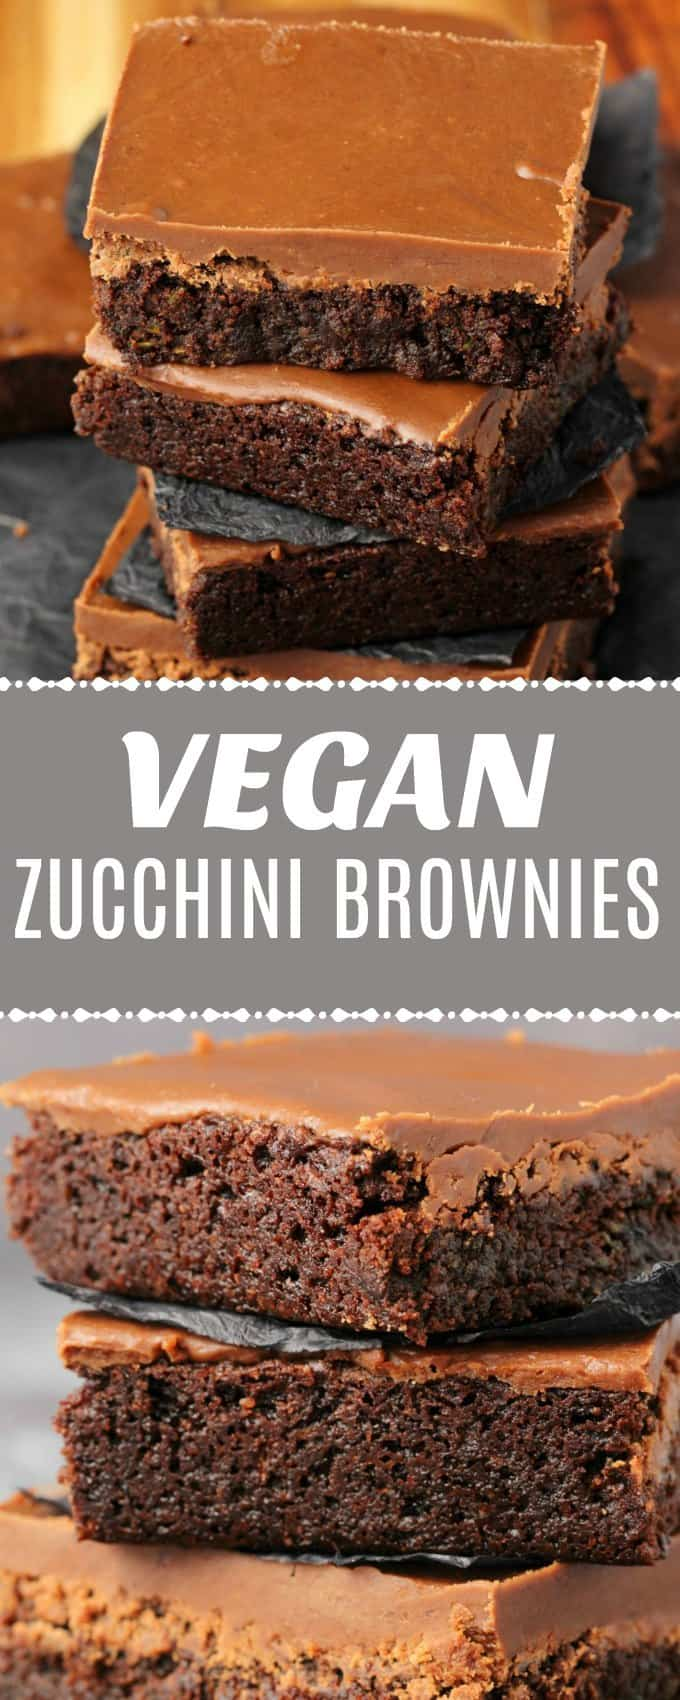 Fudgy and rich vegan zucchini brownies with a chocolate fudge topping. Mega-chocolatey and so easy to make, and you'll never know there's zucchini in them! | lovingitvegan.com